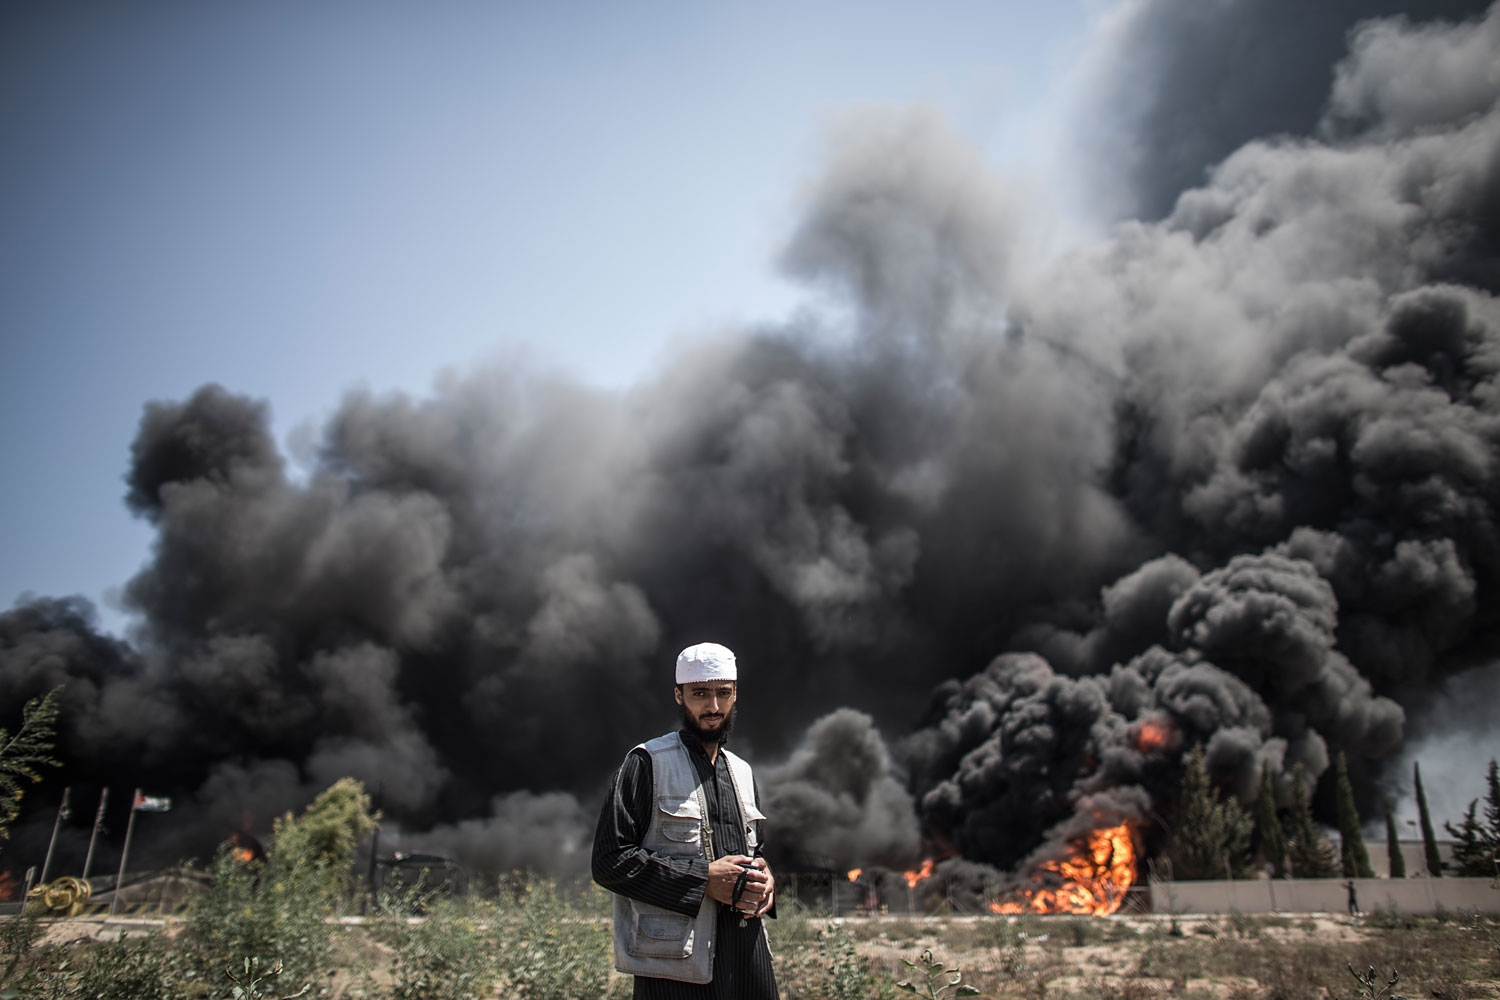 A Palestinian man walks in front of a fire raging at Gaza's main power plant on July 29, 2014, in Gaza City, following an overnight Israeli air strike